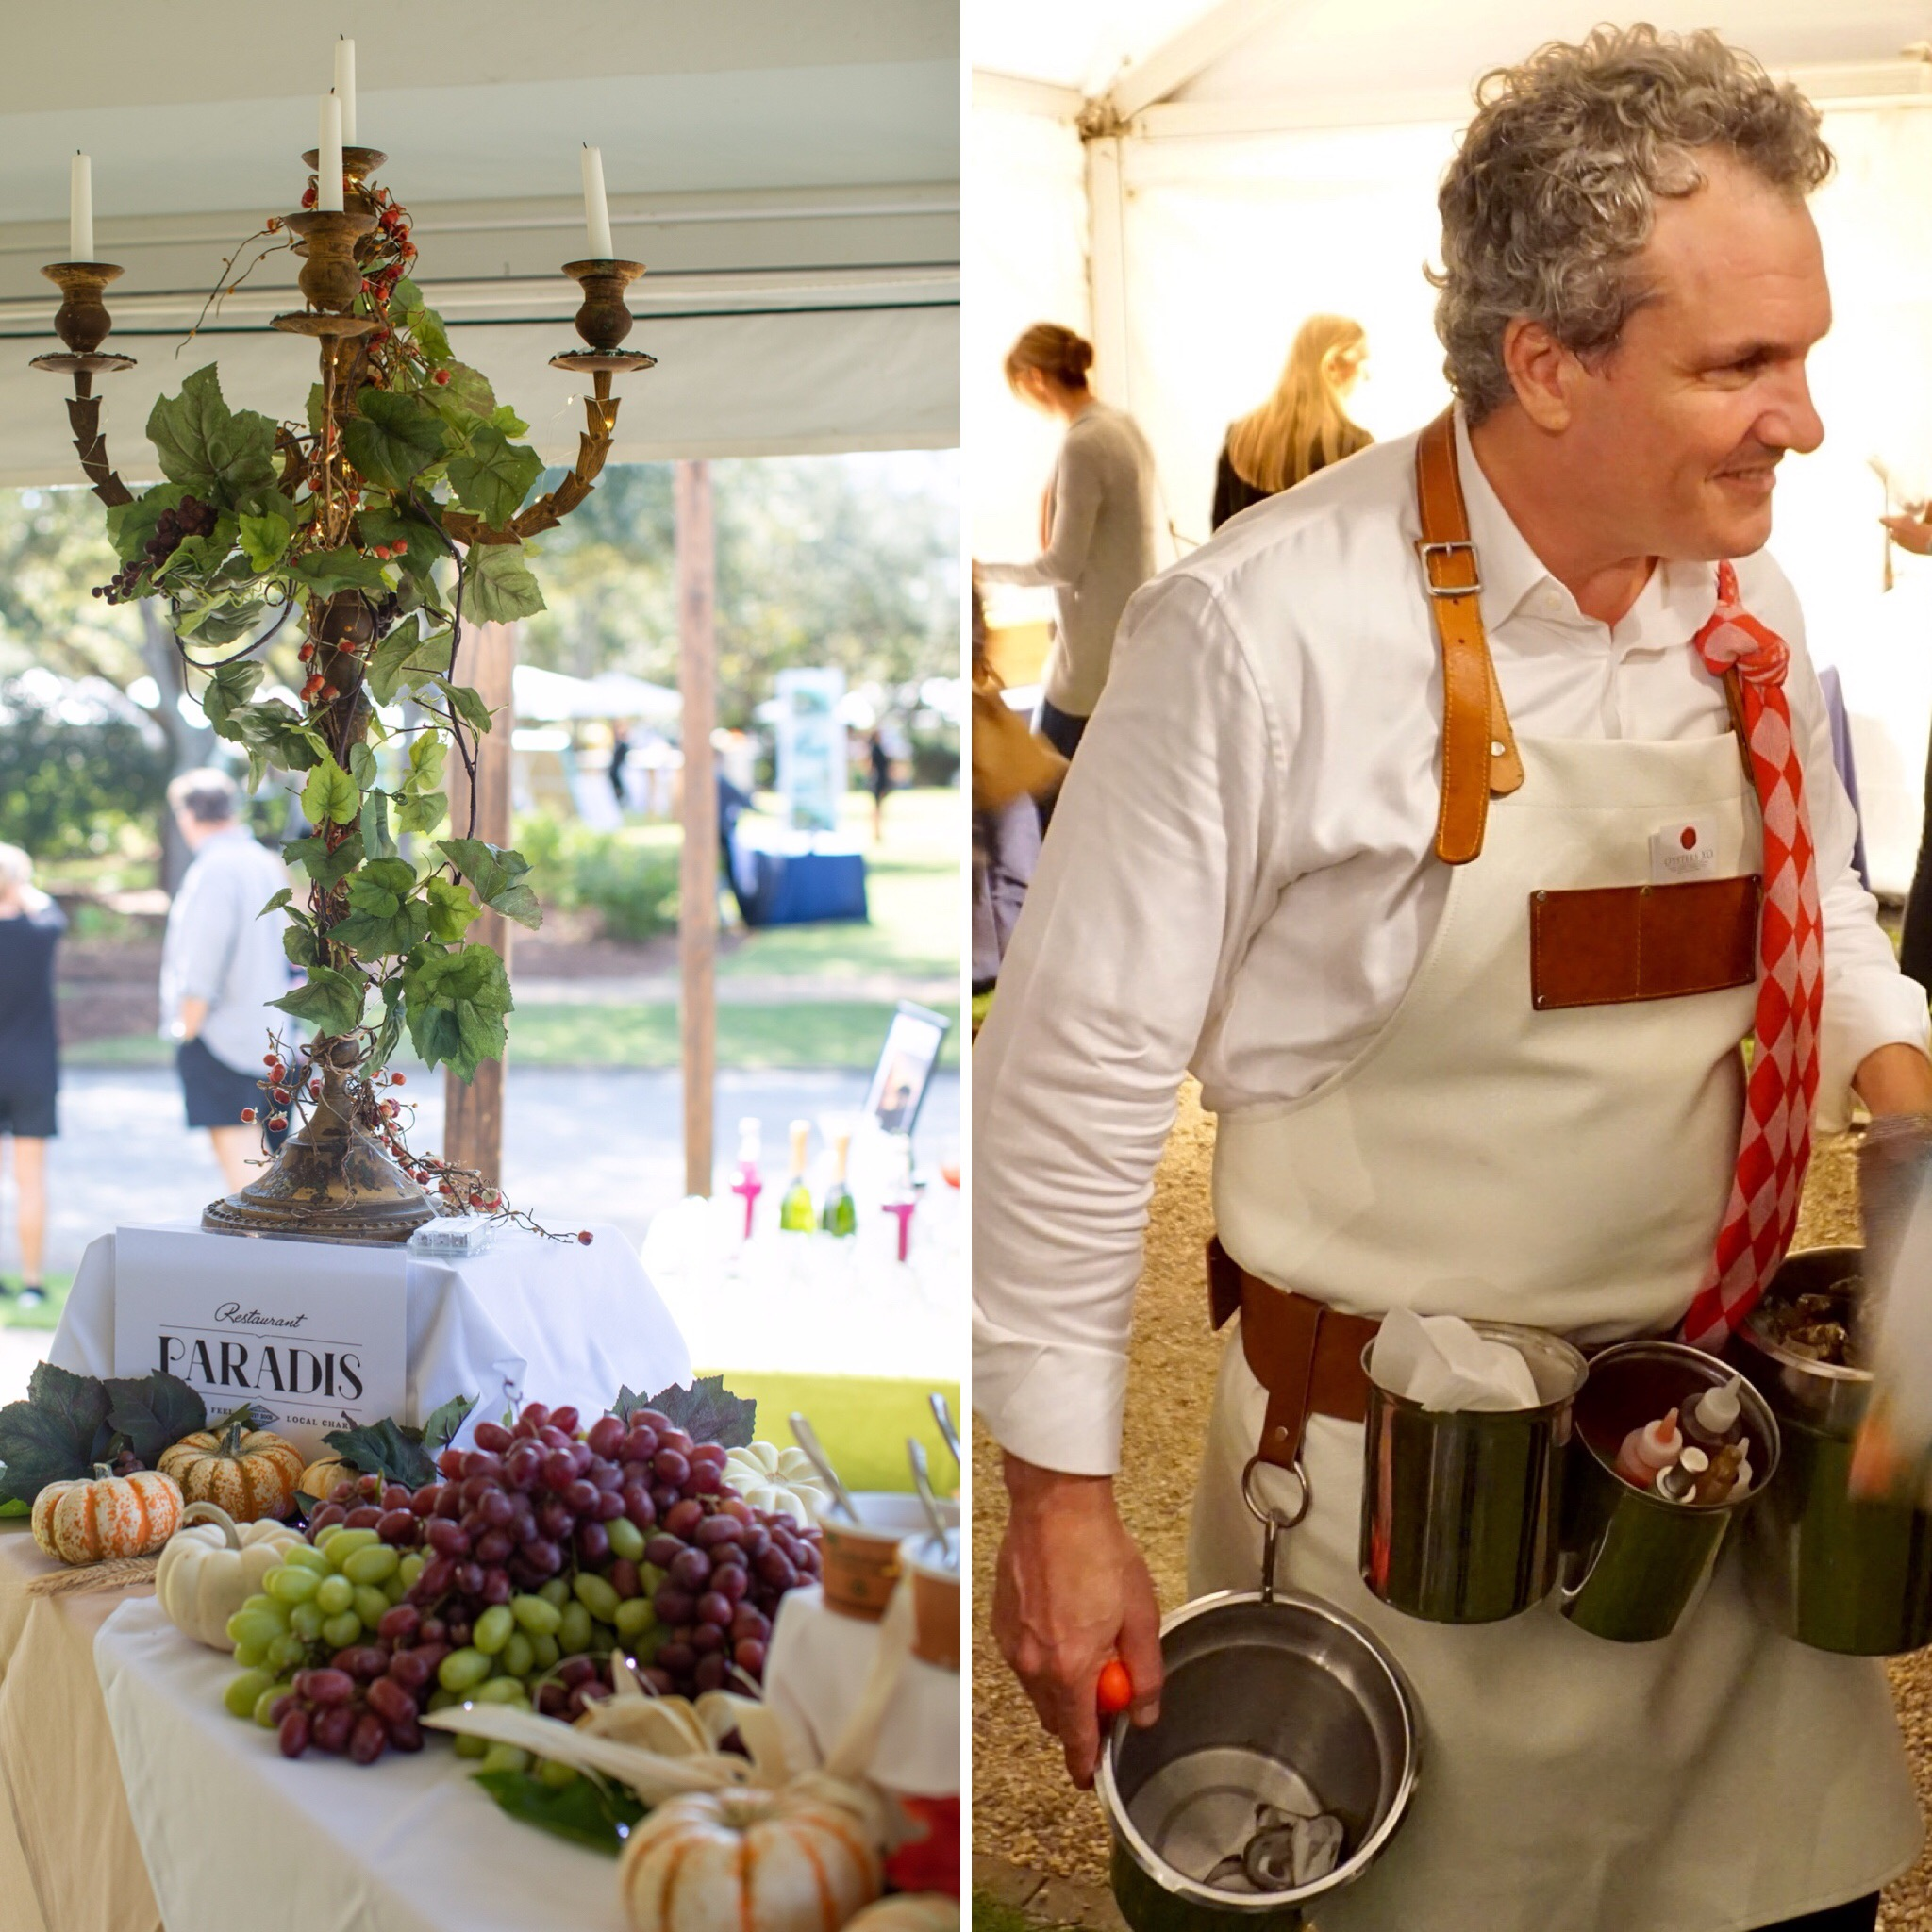 Paradis served up a harvest stew and Oysters XO shucked up oysters in the VIP Tent. (Left photo courtesy of STM Photography)